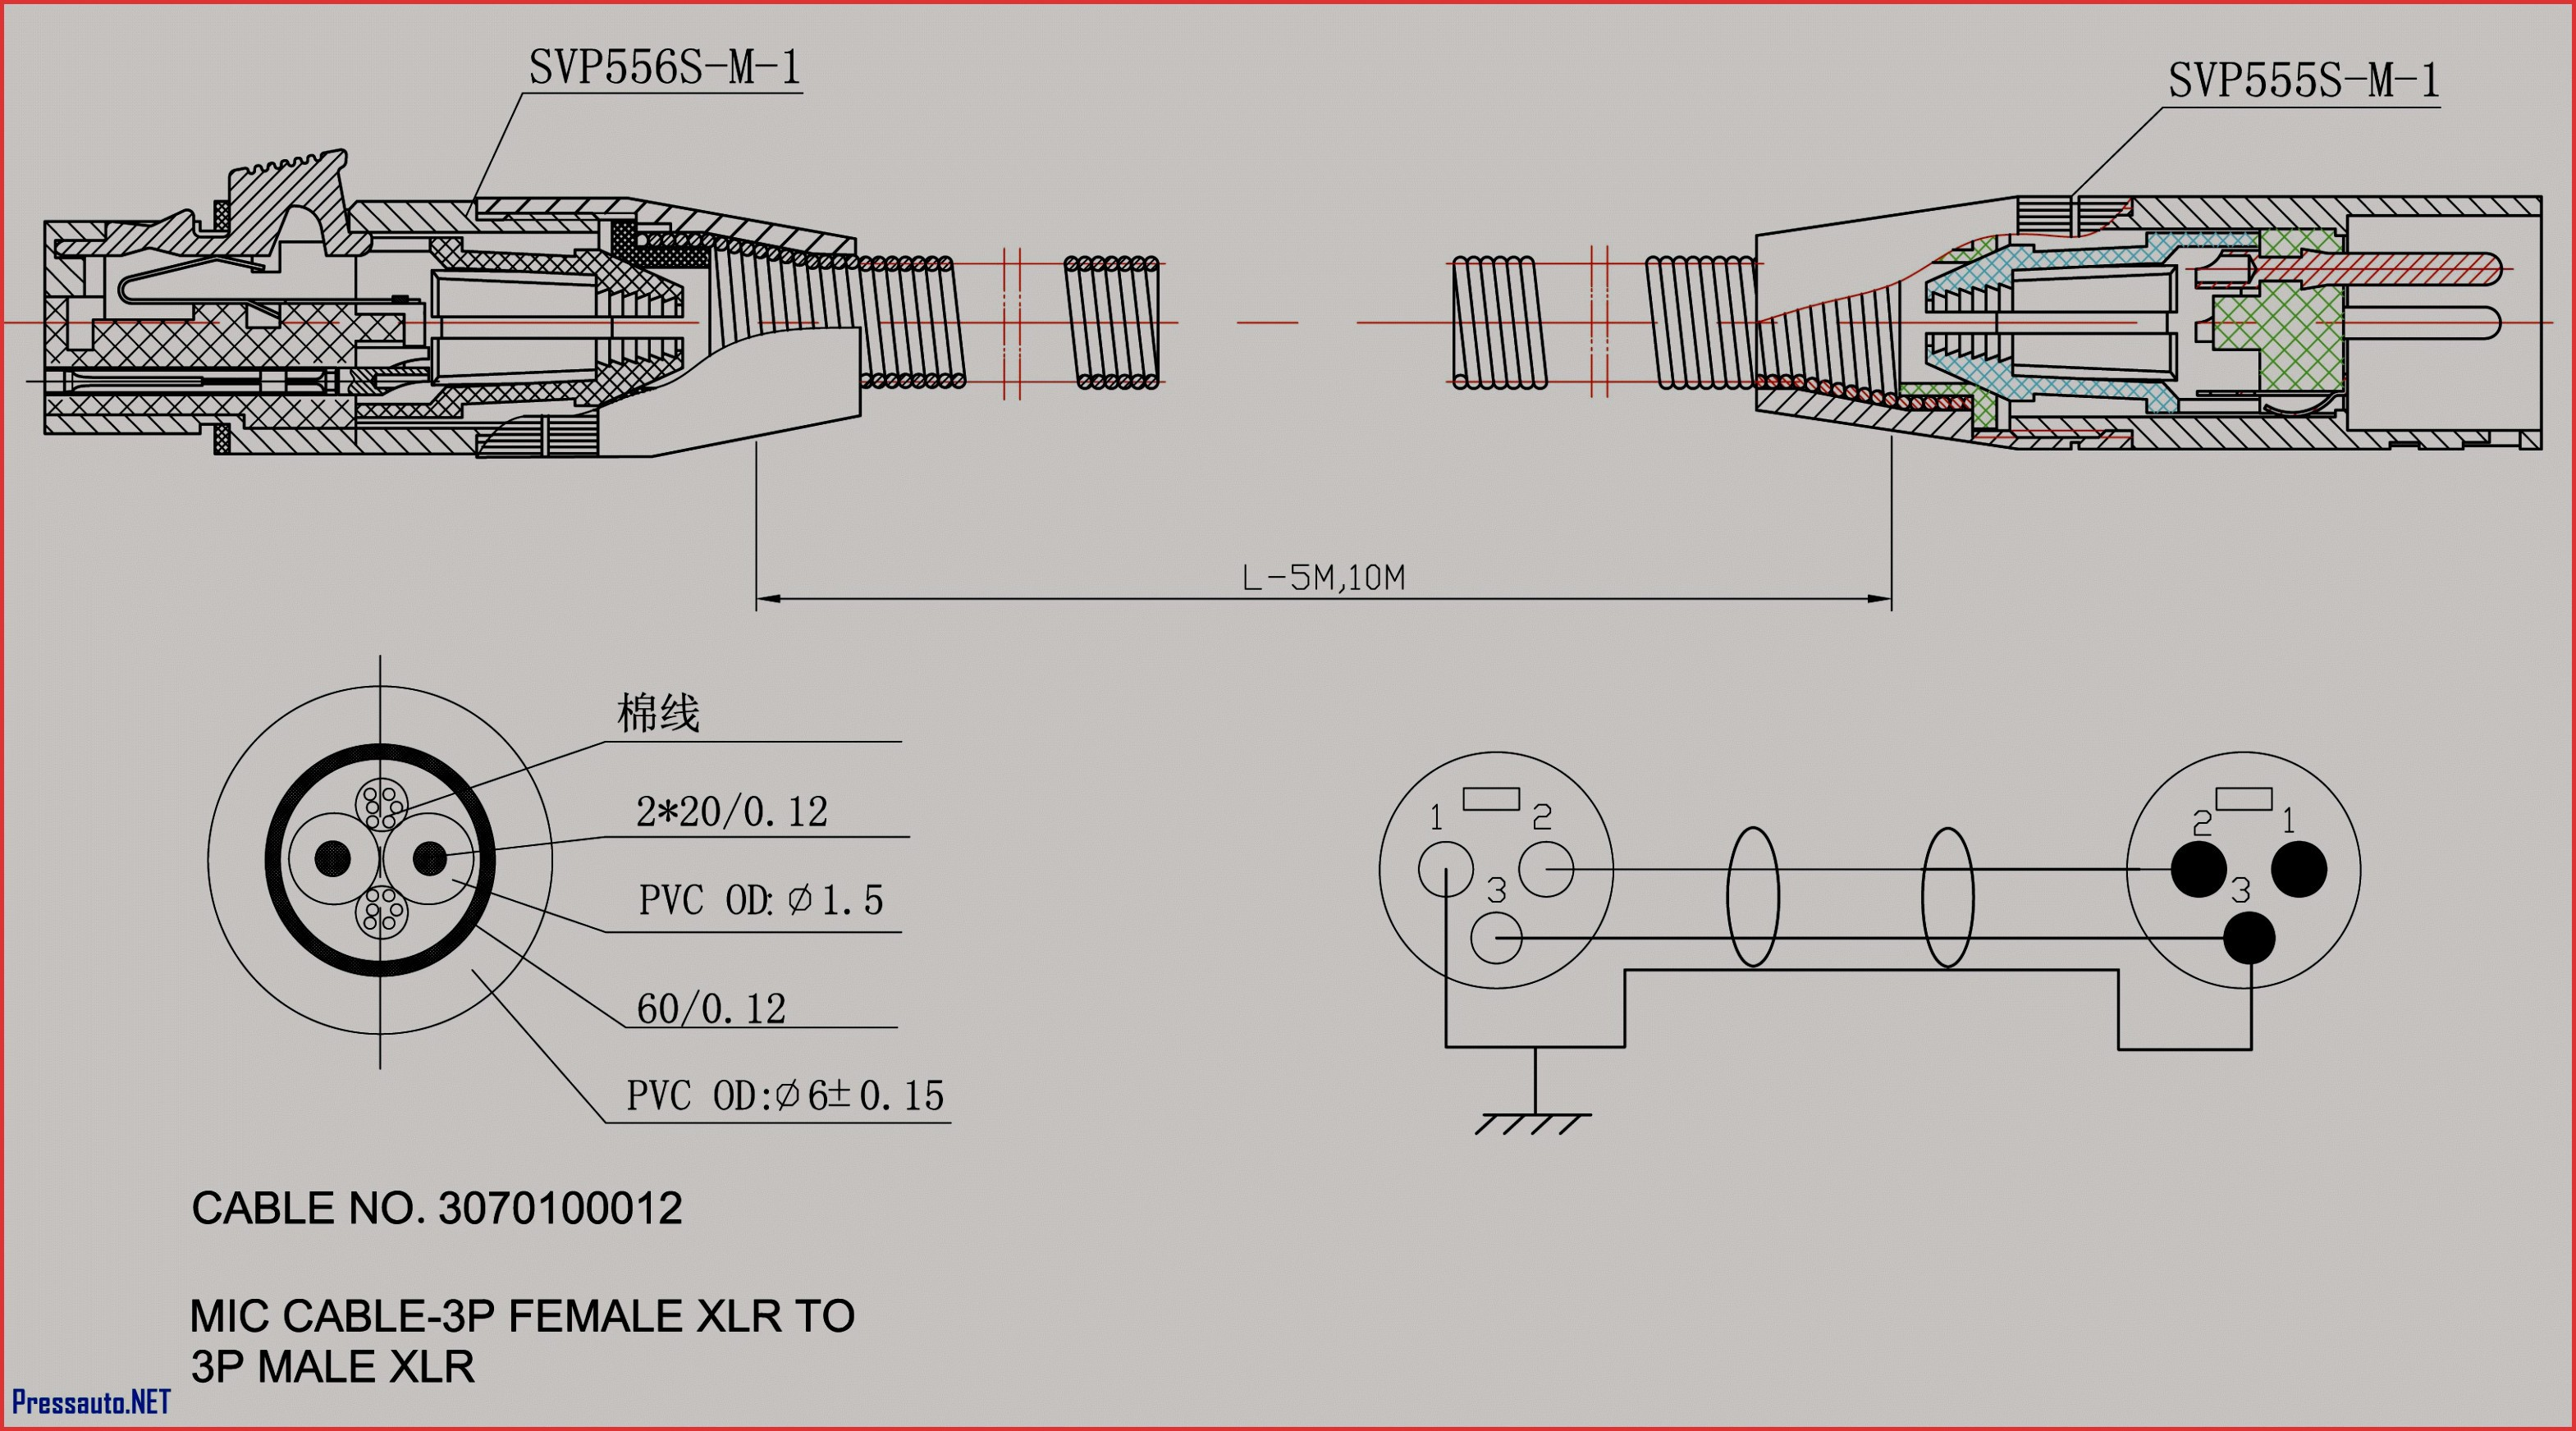 Jvc Car Stereo Wiring Diagram Hitachi Radio Wiring Harness Wiring Diagram Datasource Of Jvc Car Stereo Wiring Diagram Pioneer Car Stereo Wiring Colors Diagram